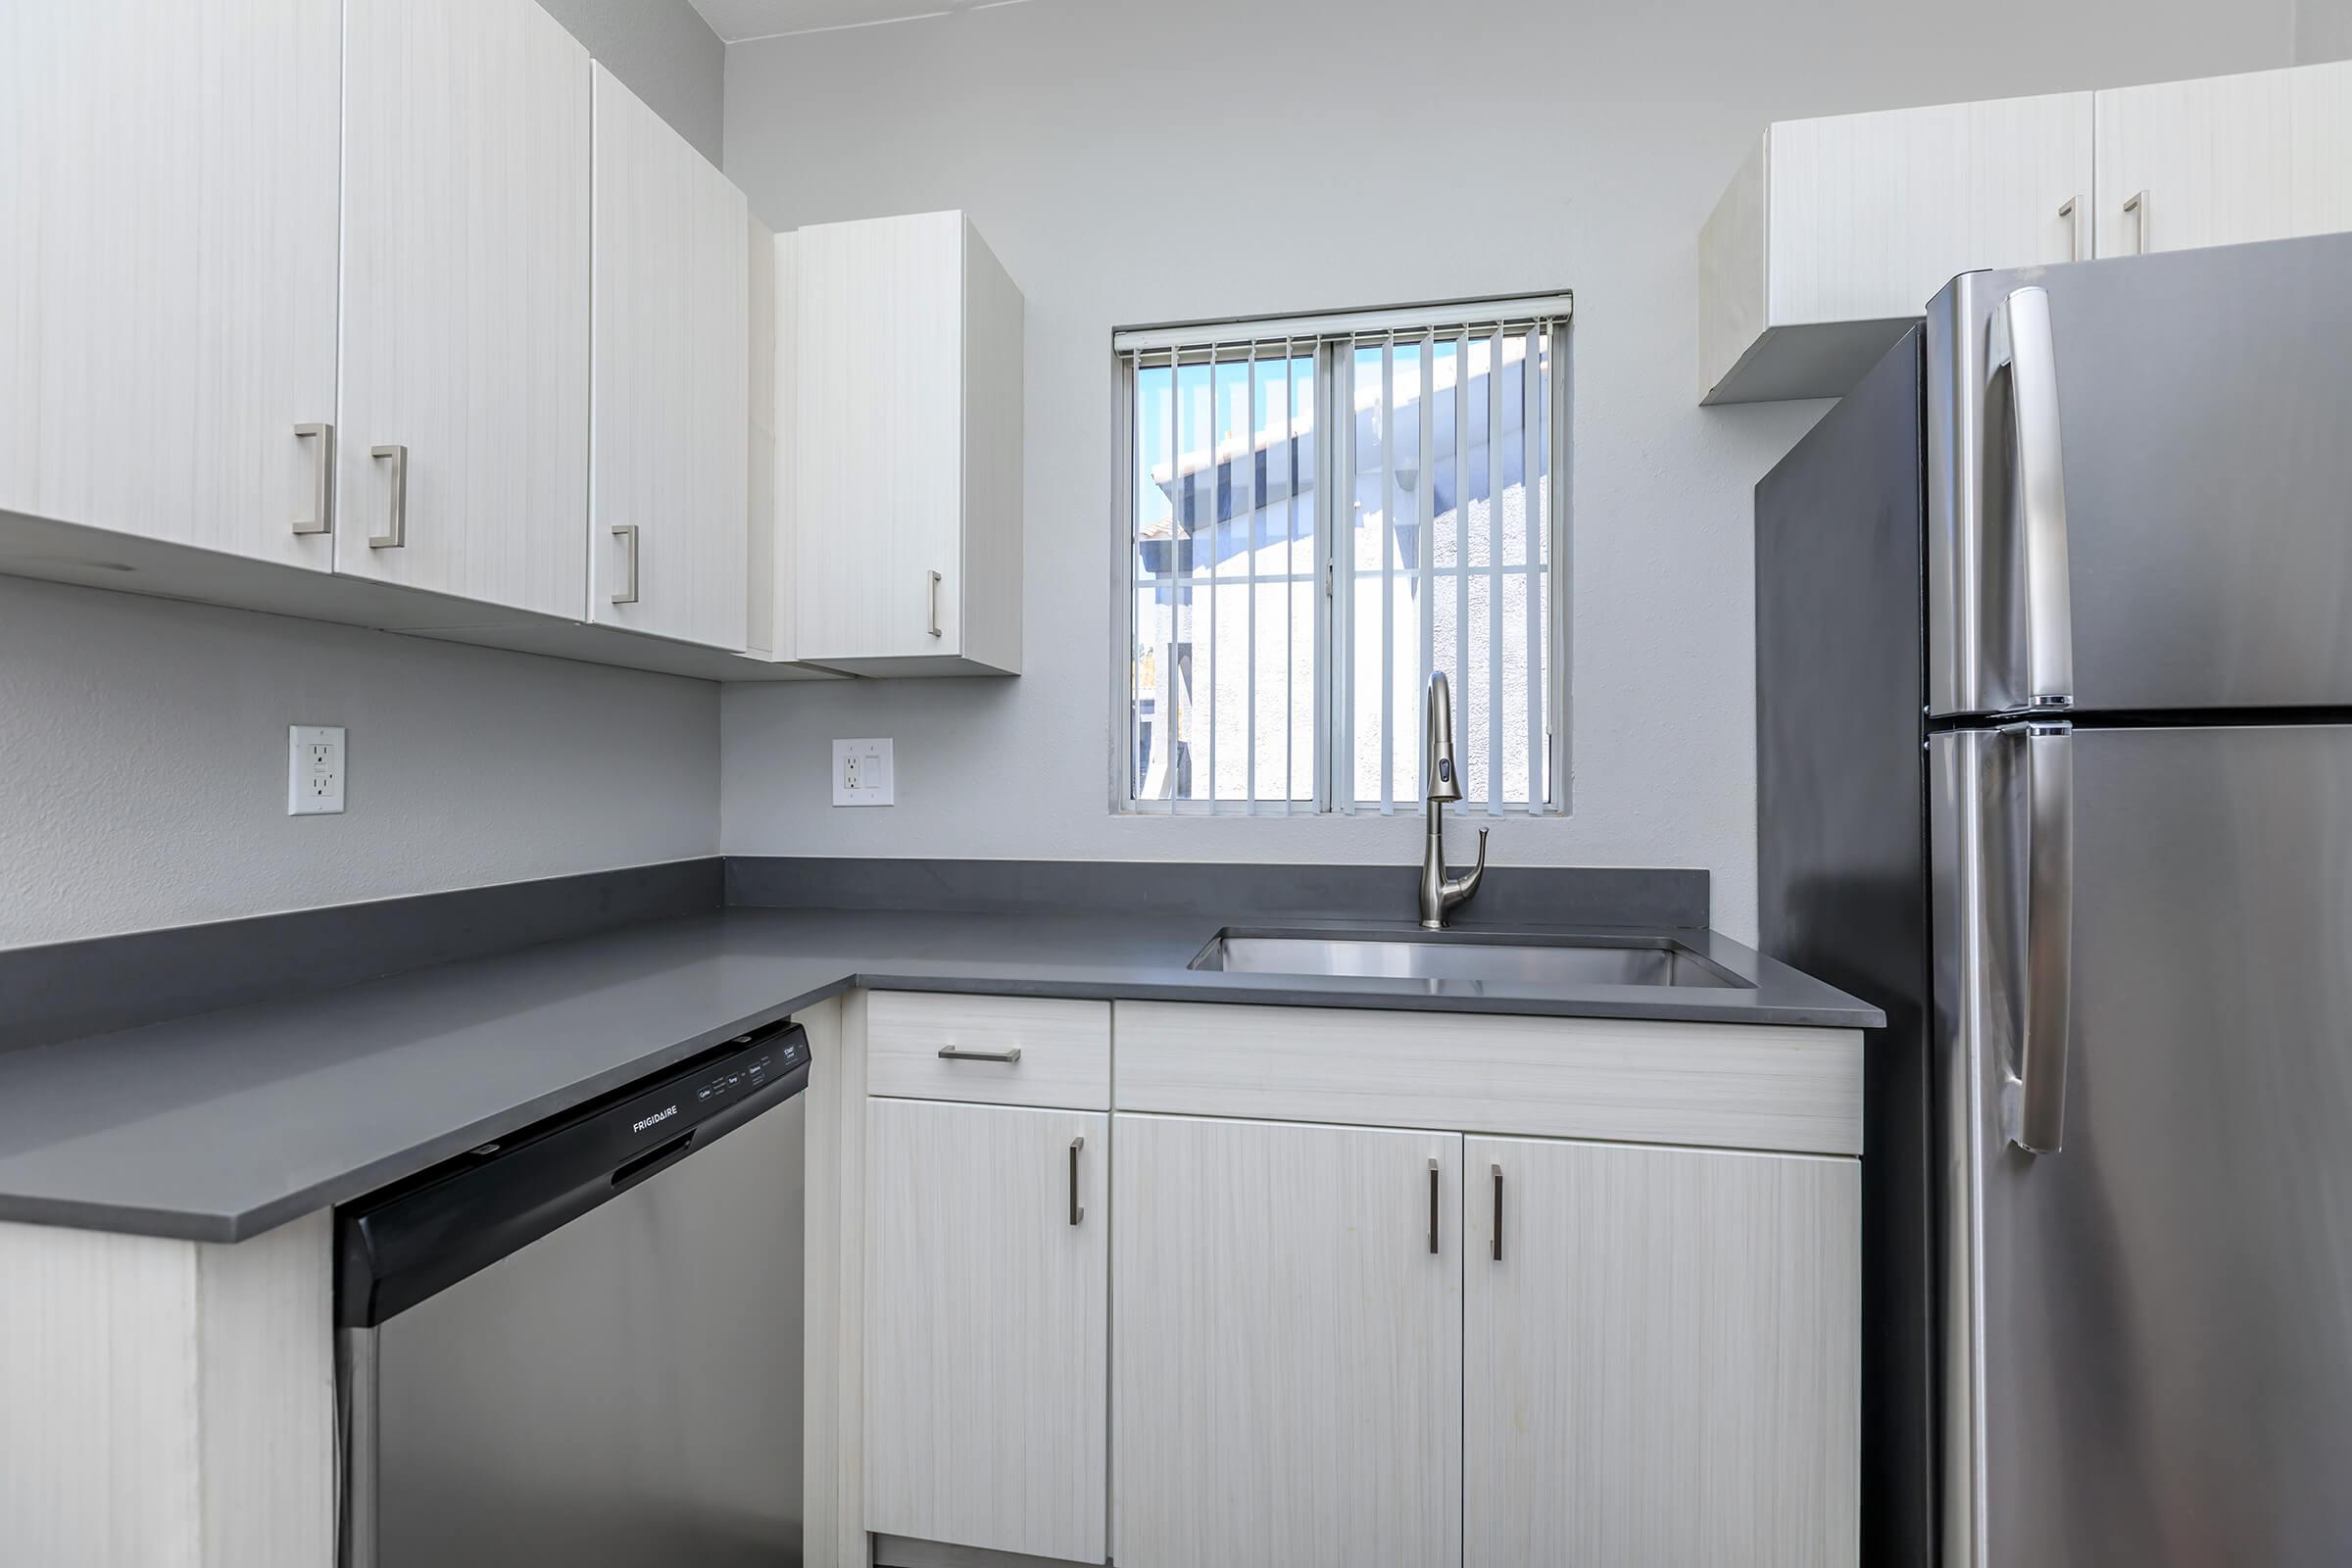 a stainless steel refrigerator in a kitchen